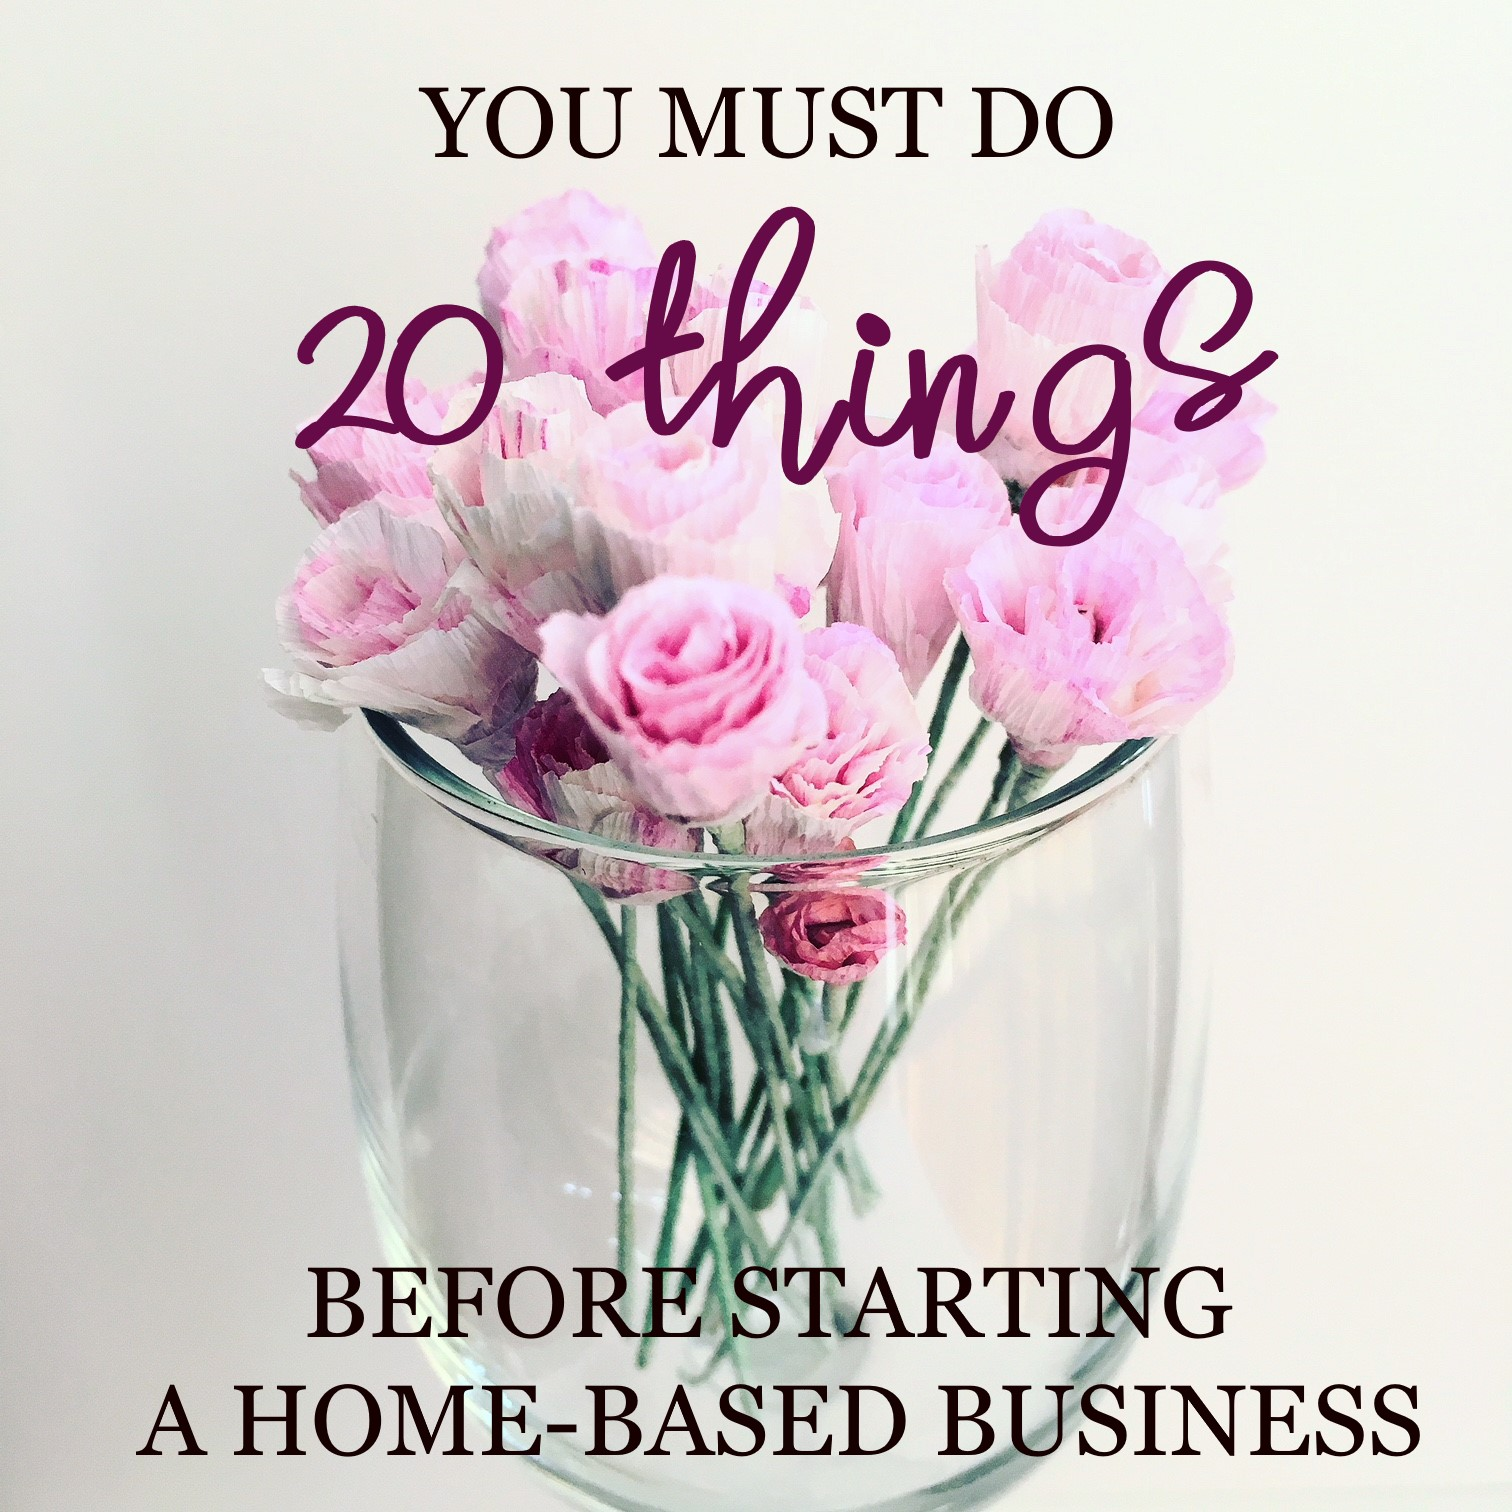 20 things before you start home-based business